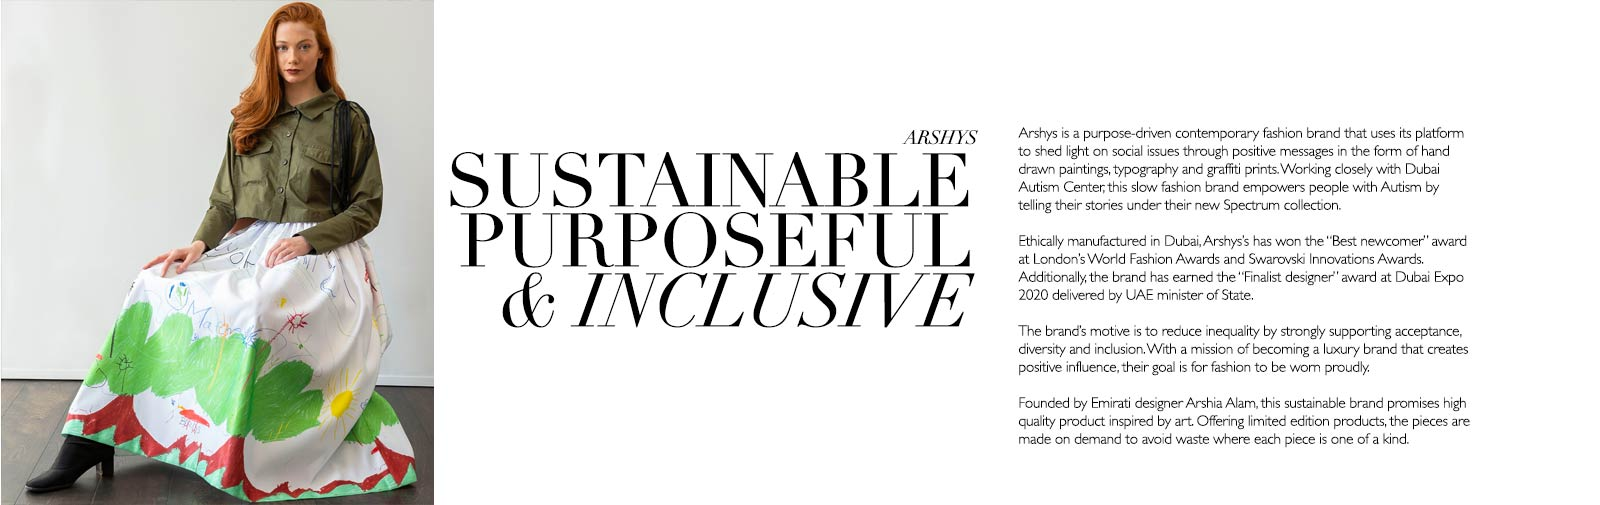 """ARSHYS - SUSTAINABLE PURPOSEFUL & INCLUSIVE - Arshys is a purpose-driven contemporary fashion brand that uses its platform to shed light on social issues through positive messages in the form of hand drawn paintings, typography and graffiti prints. Working closely with Dubai Autism Center, this slow fashion brand empowers people with Autism by telling their stories under their new Spectrum collection.   Ethically manufactured in Dubai, Arshys's has won the """"Best newcomer"""" award at London's World Fashion Awards and Swarovski Innovations Awards. Additionally, the brand has earned the """"Finalist designer"""" award at Dubai Expo 2020 delivered by UAE minister of State.   The brand's motive is to reduce inequality by strongly supporting acceptance, diversity and inclusion. With a mission of becoming a luxury brand that creates positive influence, their goal is for fashion to be worn proudly.   Founded by Emirati designer Arshia Alam, this sustainable brand promises high quality product inspired by art. Offering limited edition products, the pieces are made on demand to avoid waste where each piece is one of a kind."""